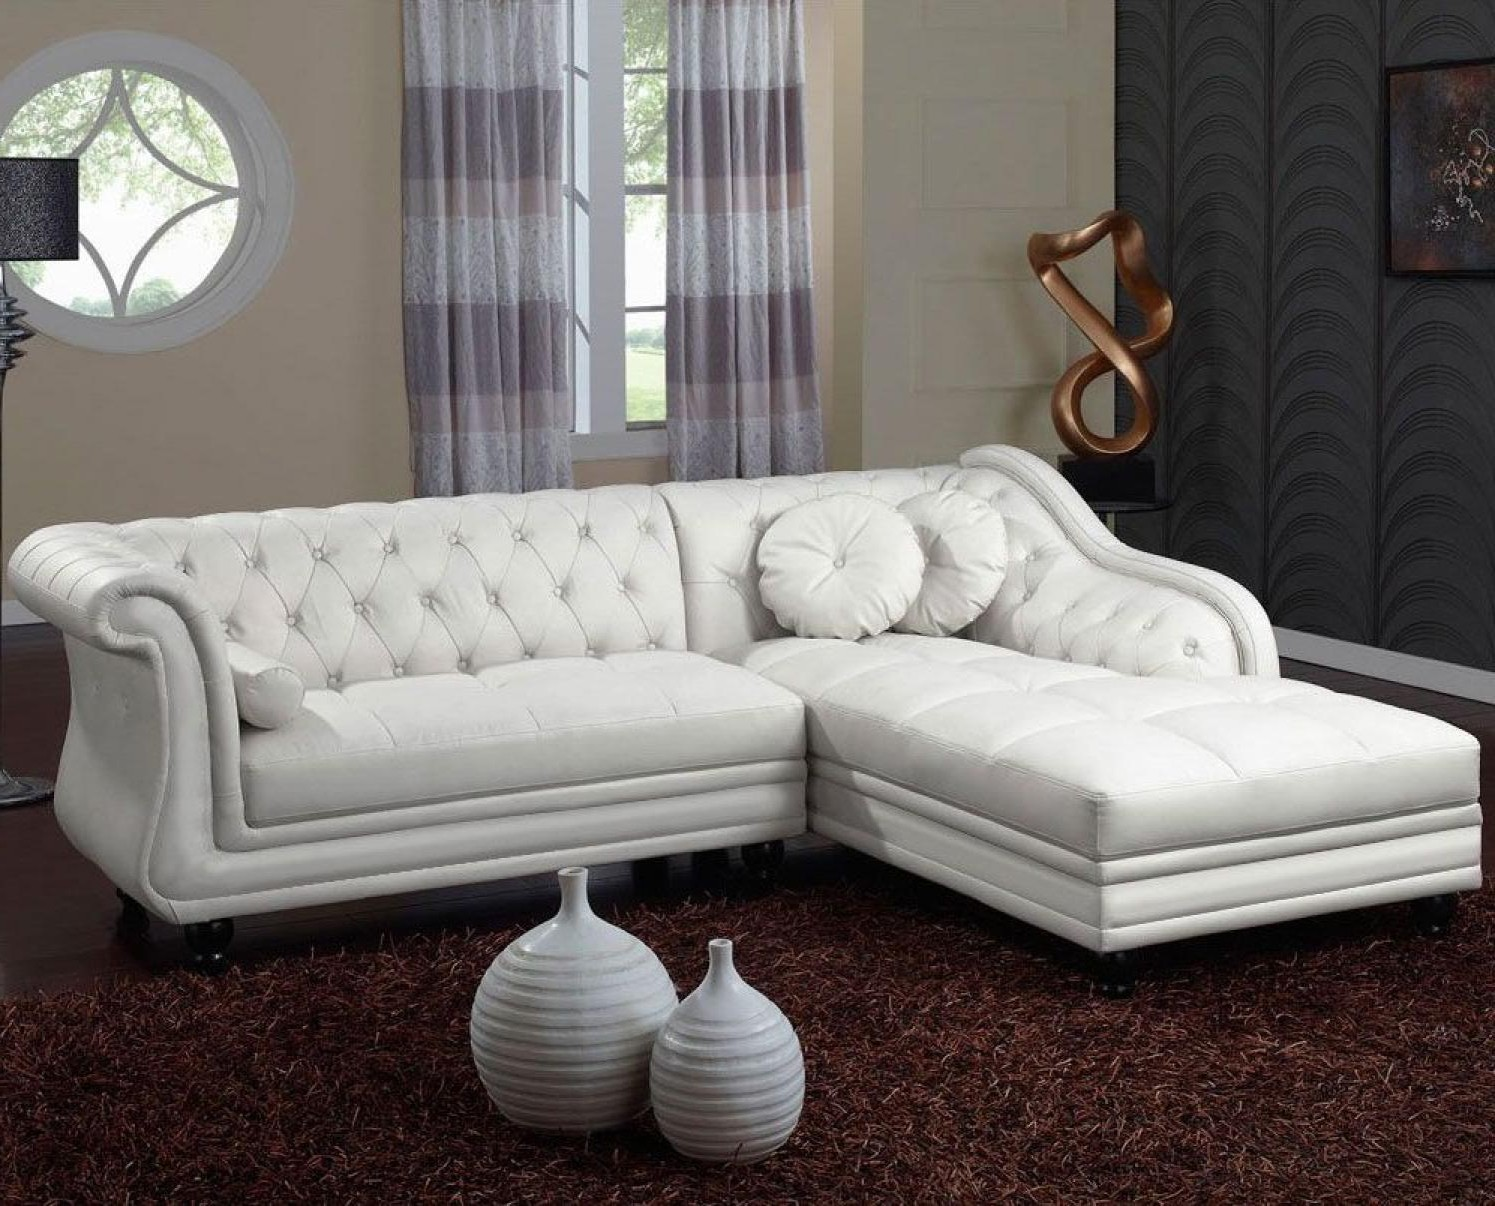 Canape dangle chesterfield cuir blanc canap id es de for Canape chesterfield cuir